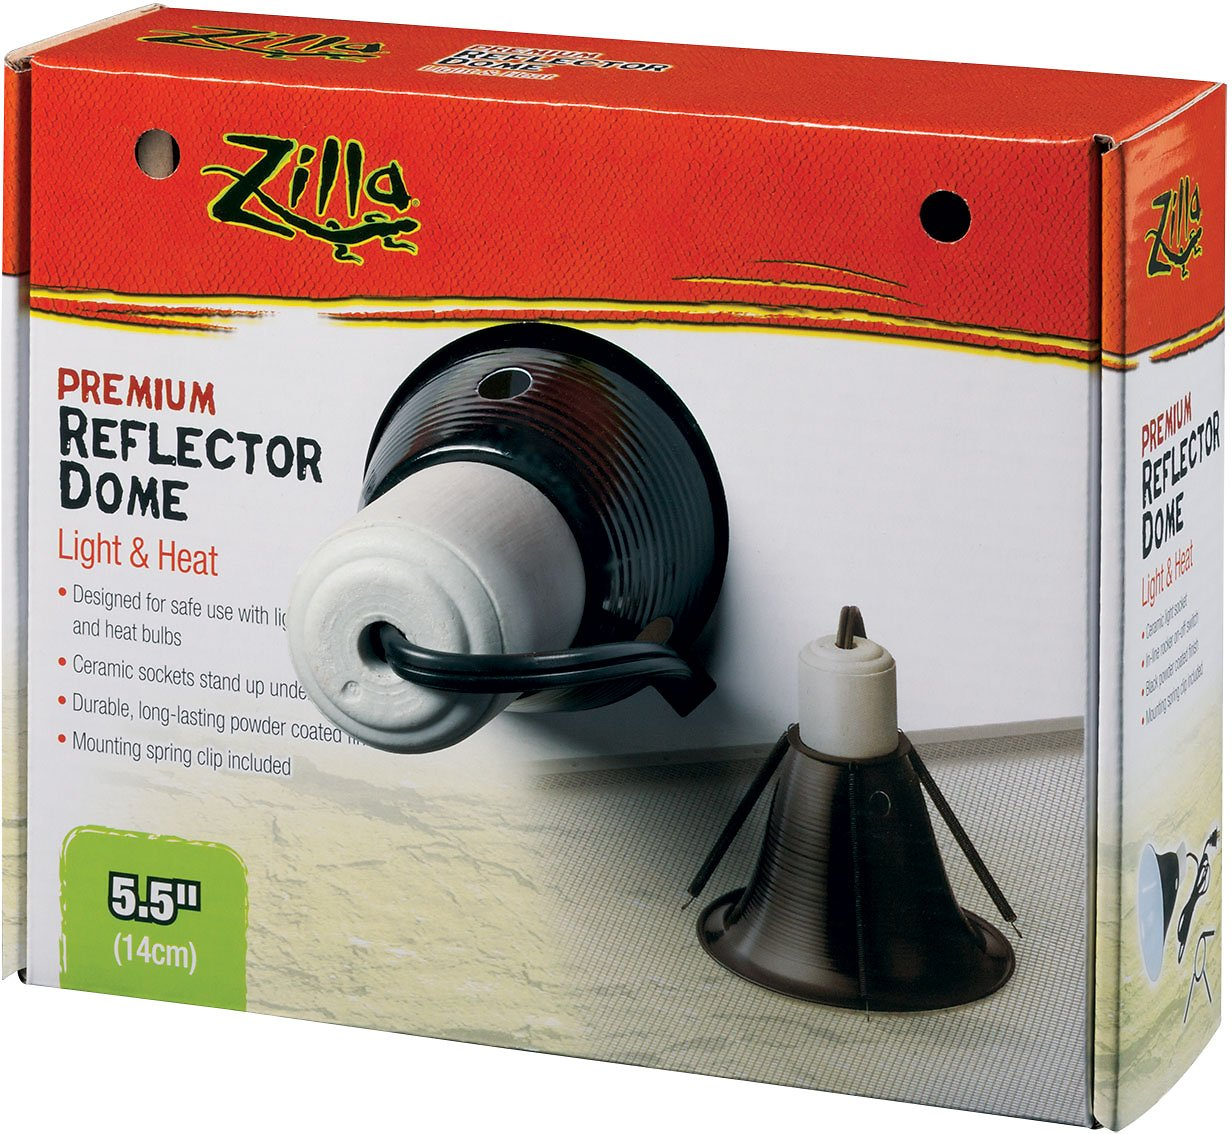 Zilla Premium Reflector Light & Heat Black Ceramic Dome Lighting Fixture Image